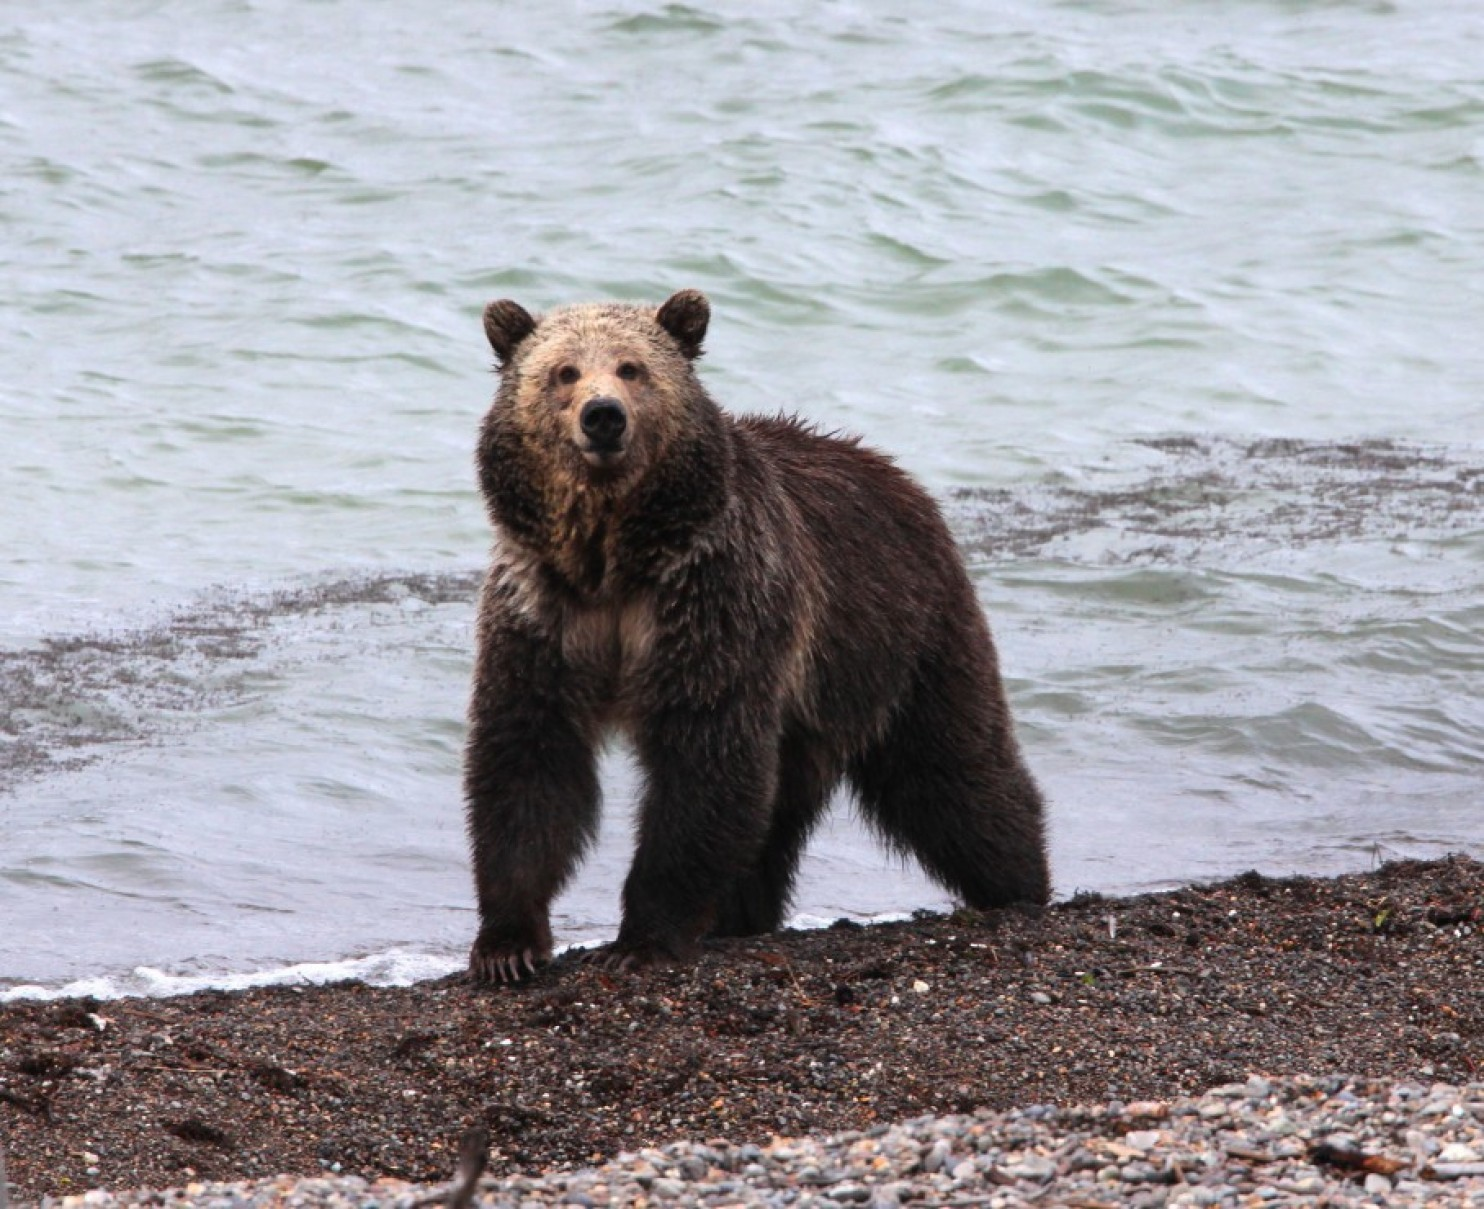 grizzly bear file_211205